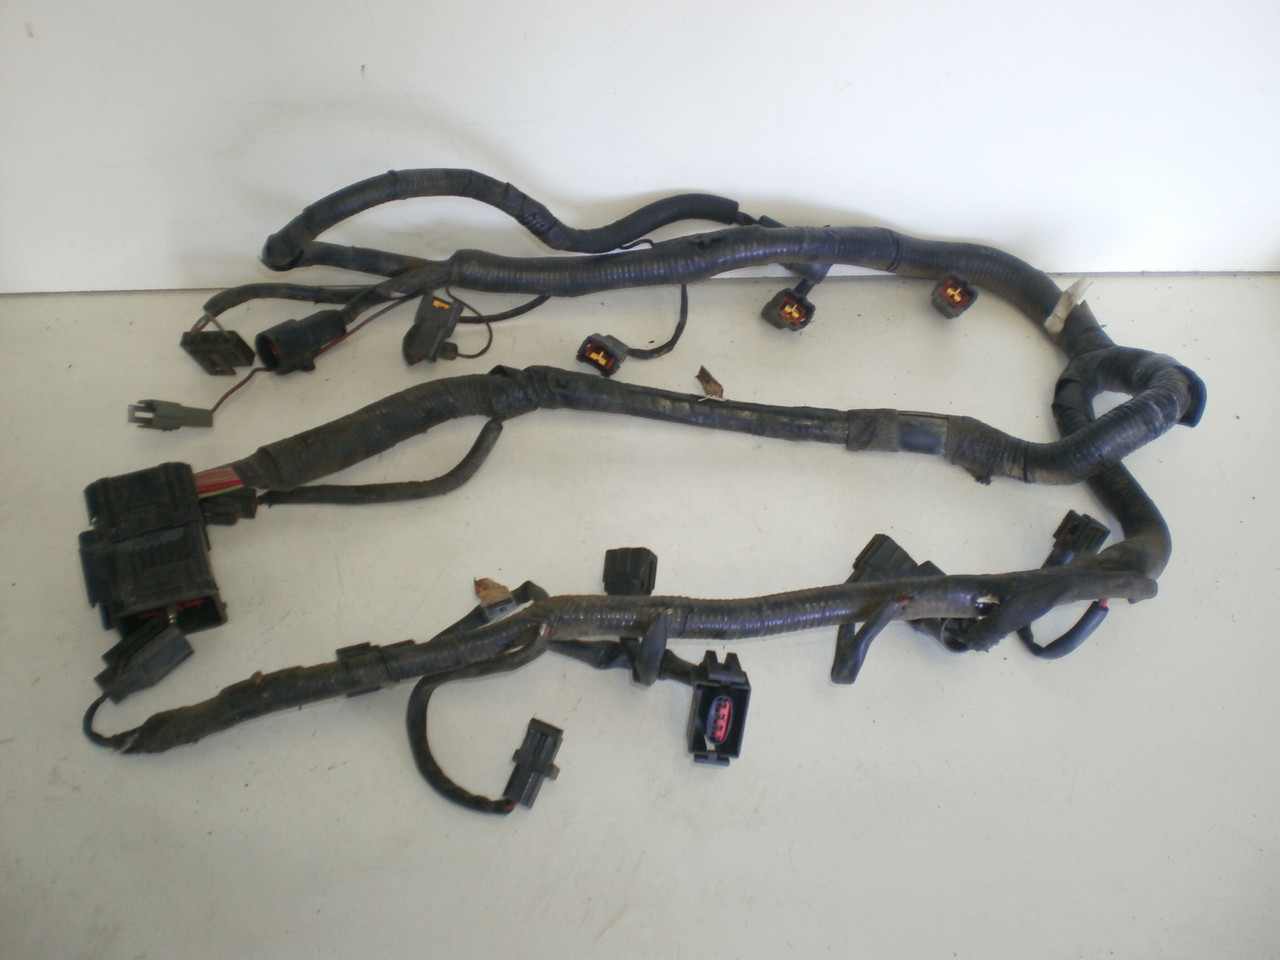 hight resolution of 1995 ford mustang wiring harness wiring diagram 1994 1995 ford mustang 5 0 v8 302 engine